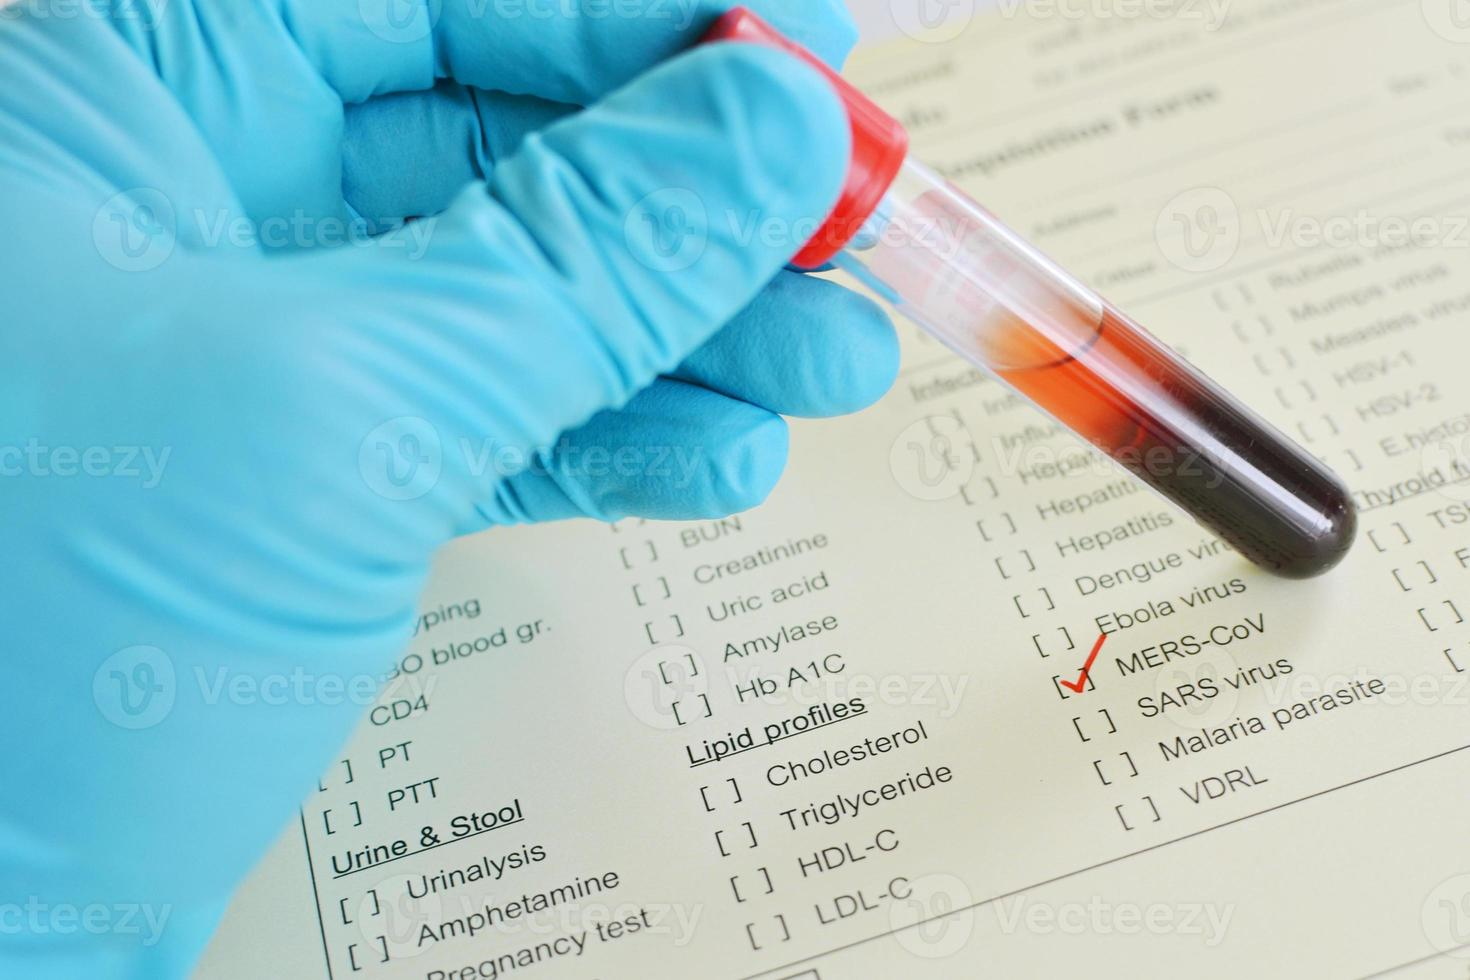 Blood for MERS testing photo